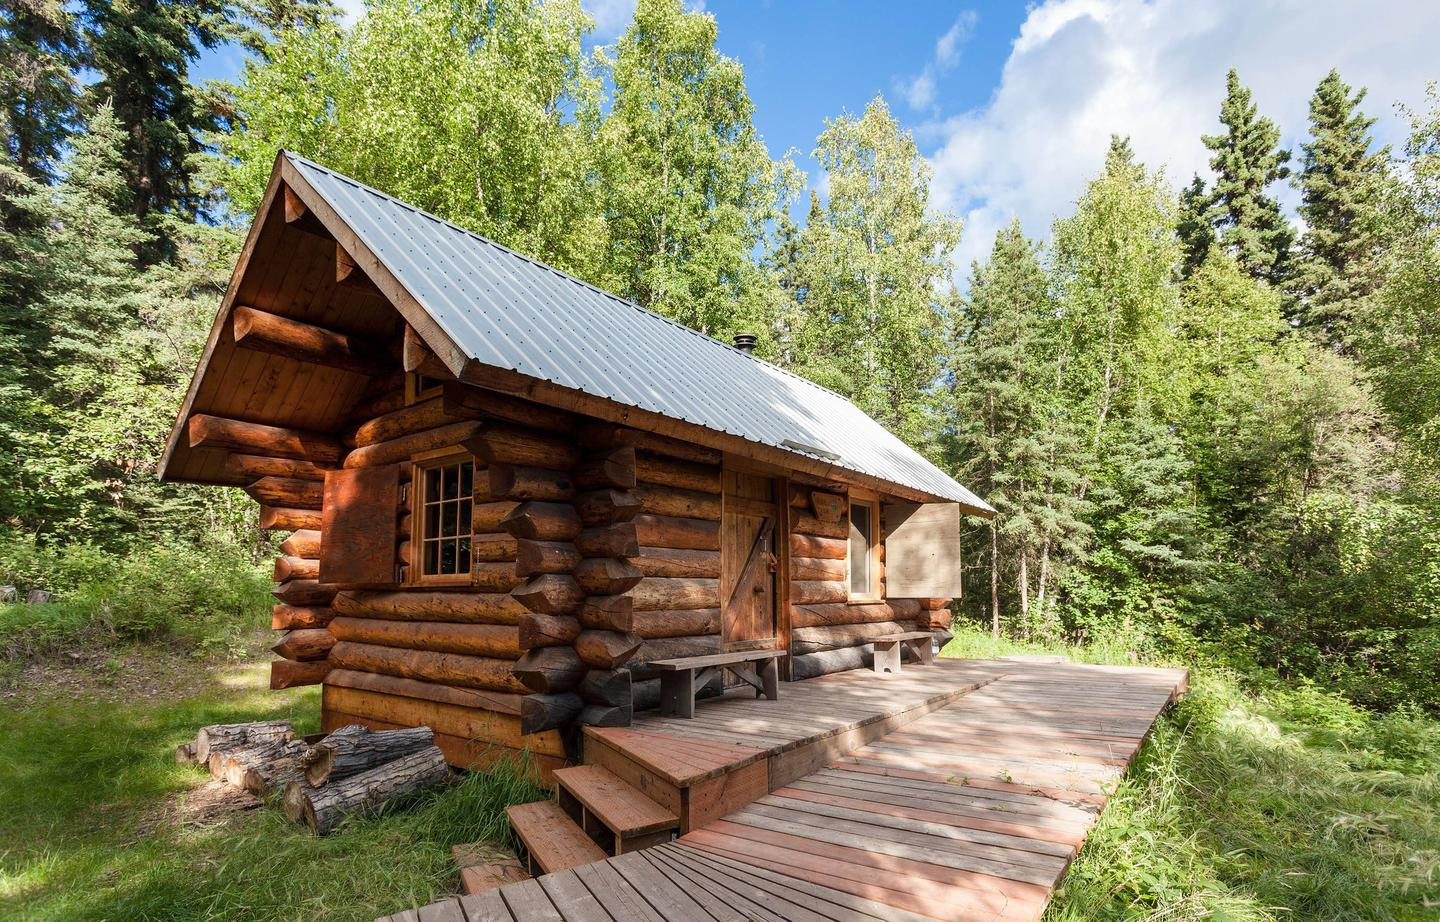 A log cabin sits in a forest of spruce and hardwood treesFred Blixt Cabin in summer.